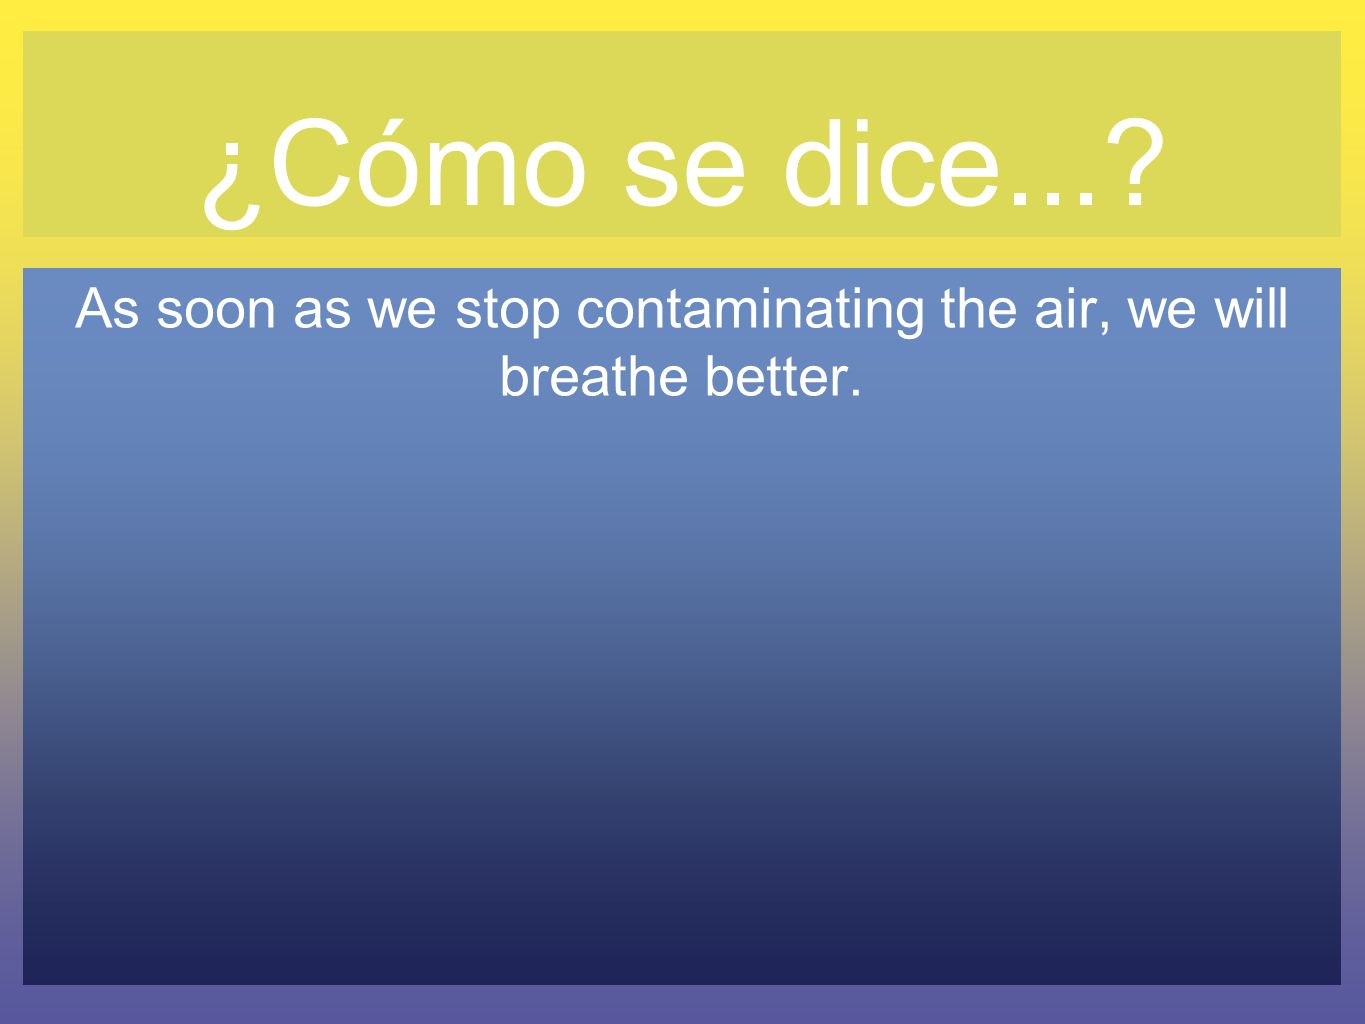 ¿Cómo se dice...? Provided that it rains a lot this summer, there will not be a drought.